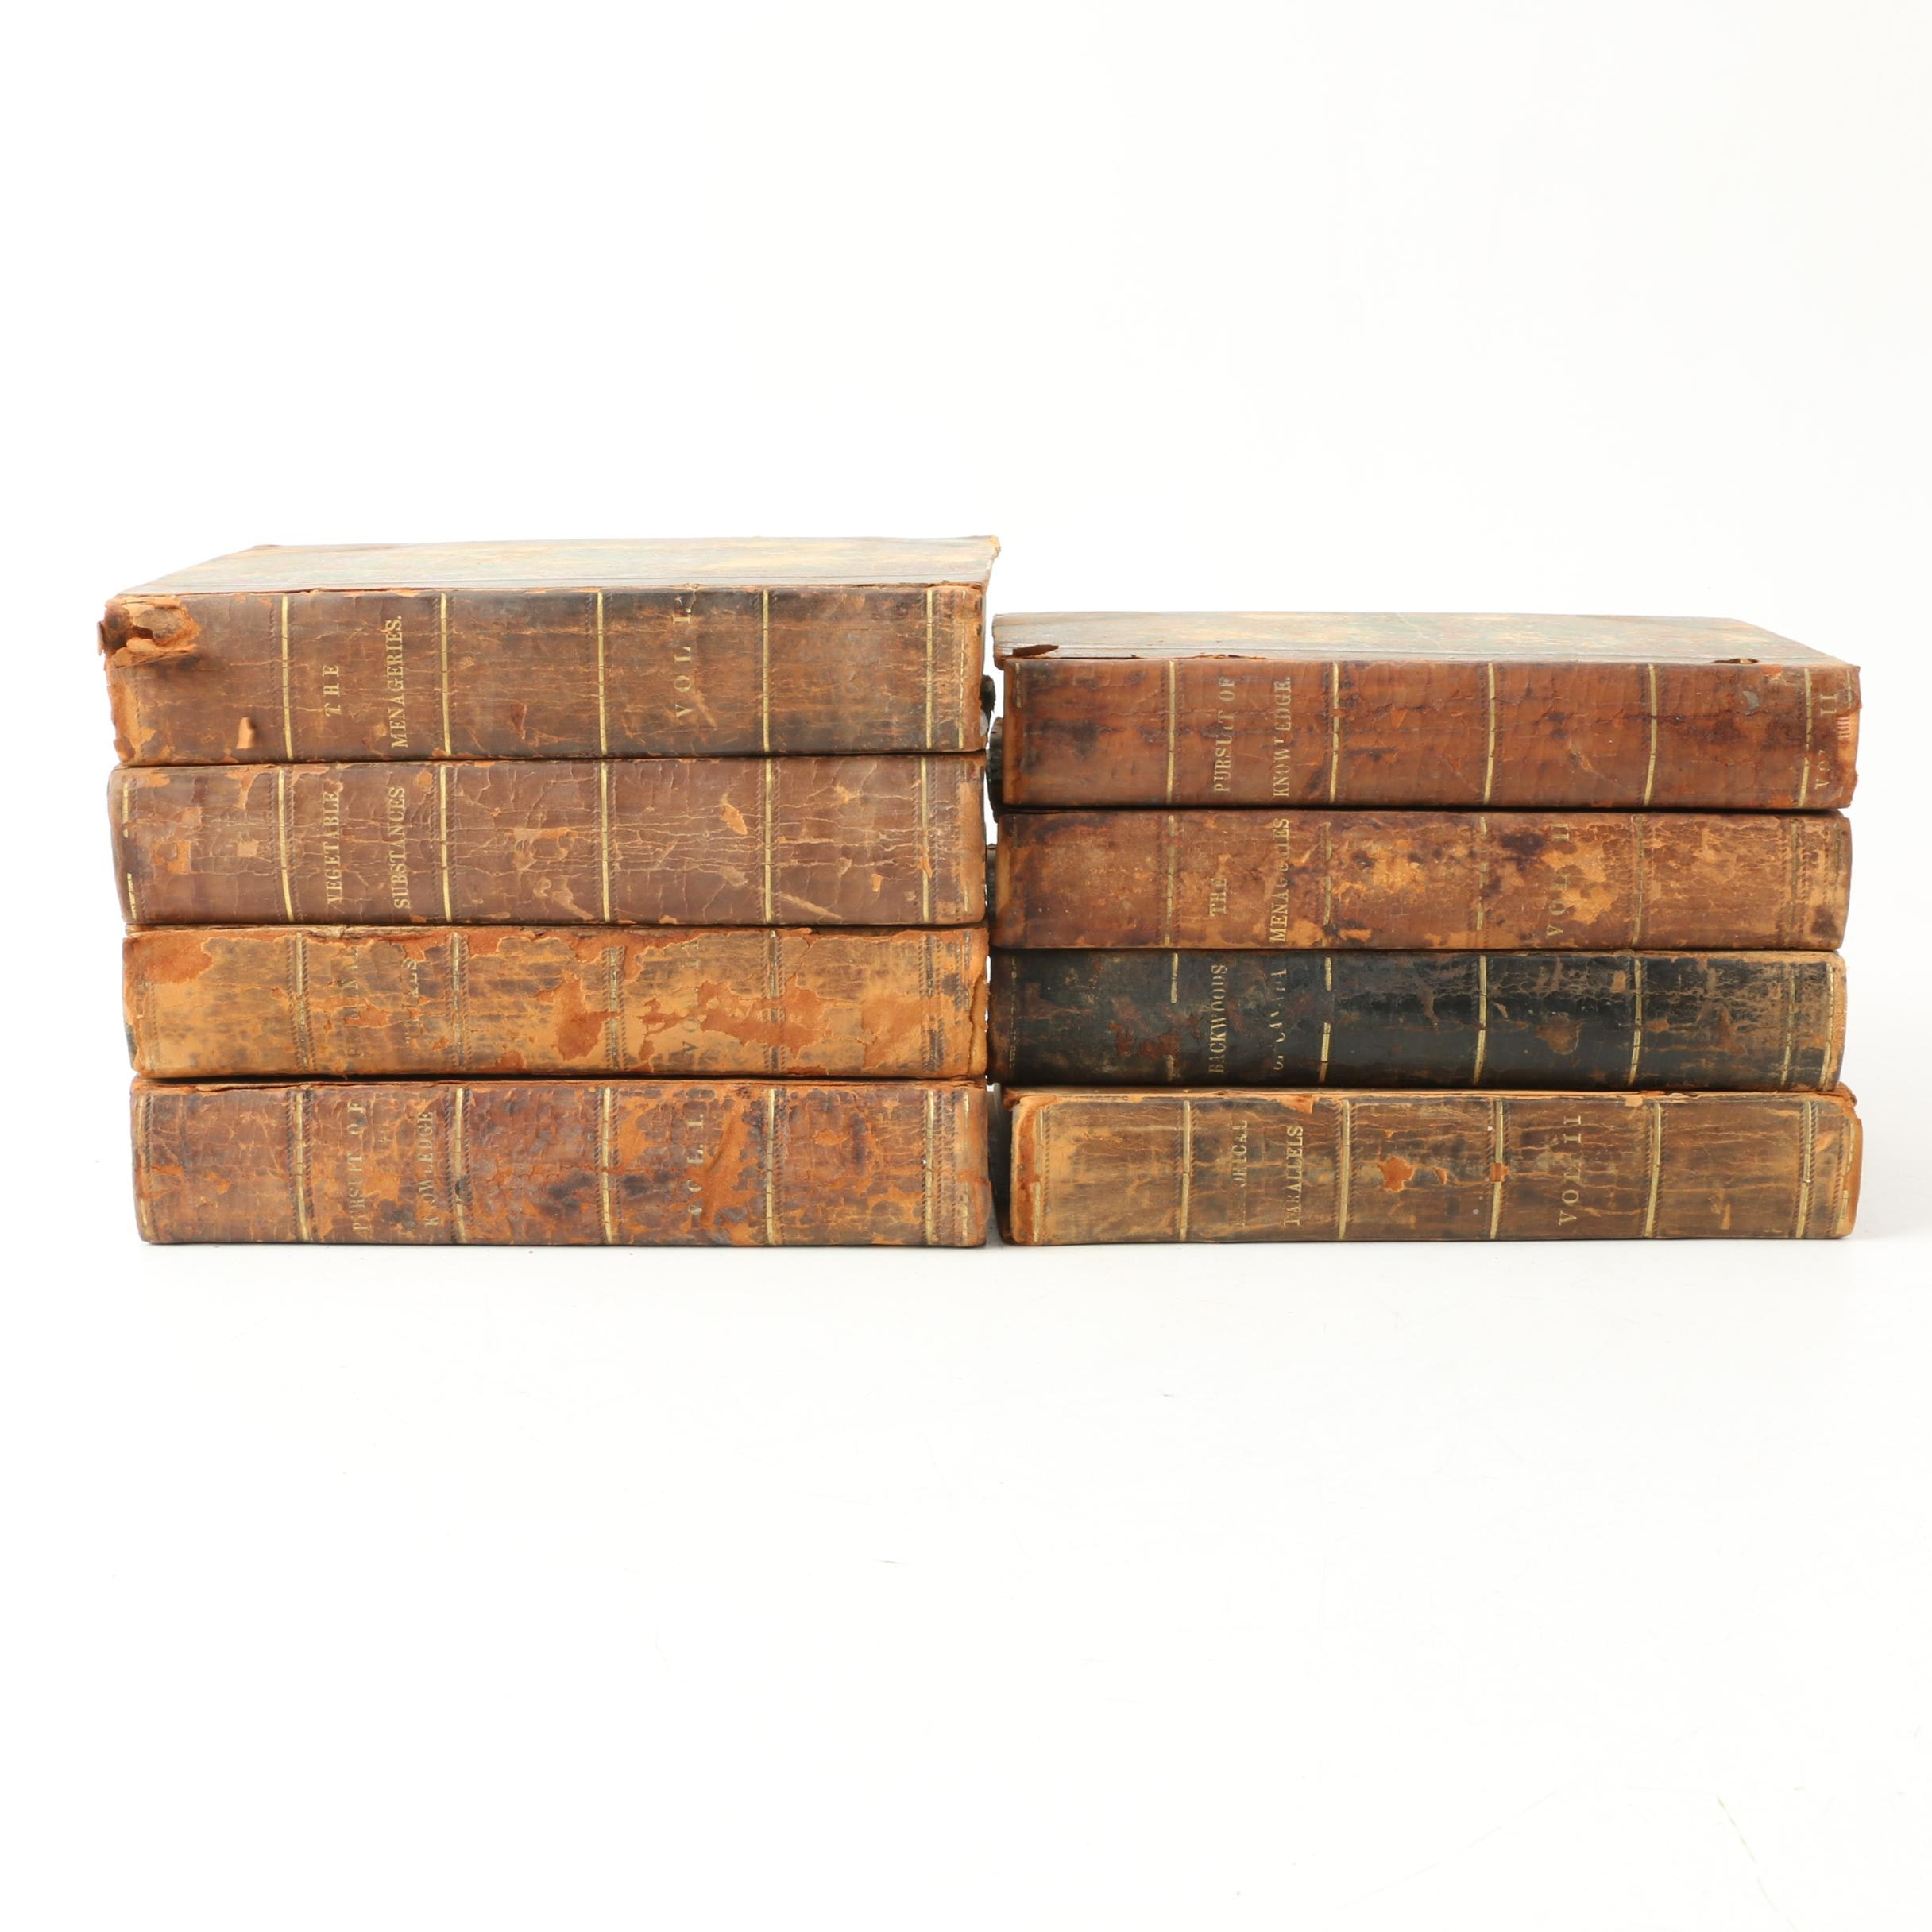 Early 19th Century Non-Fiction Books